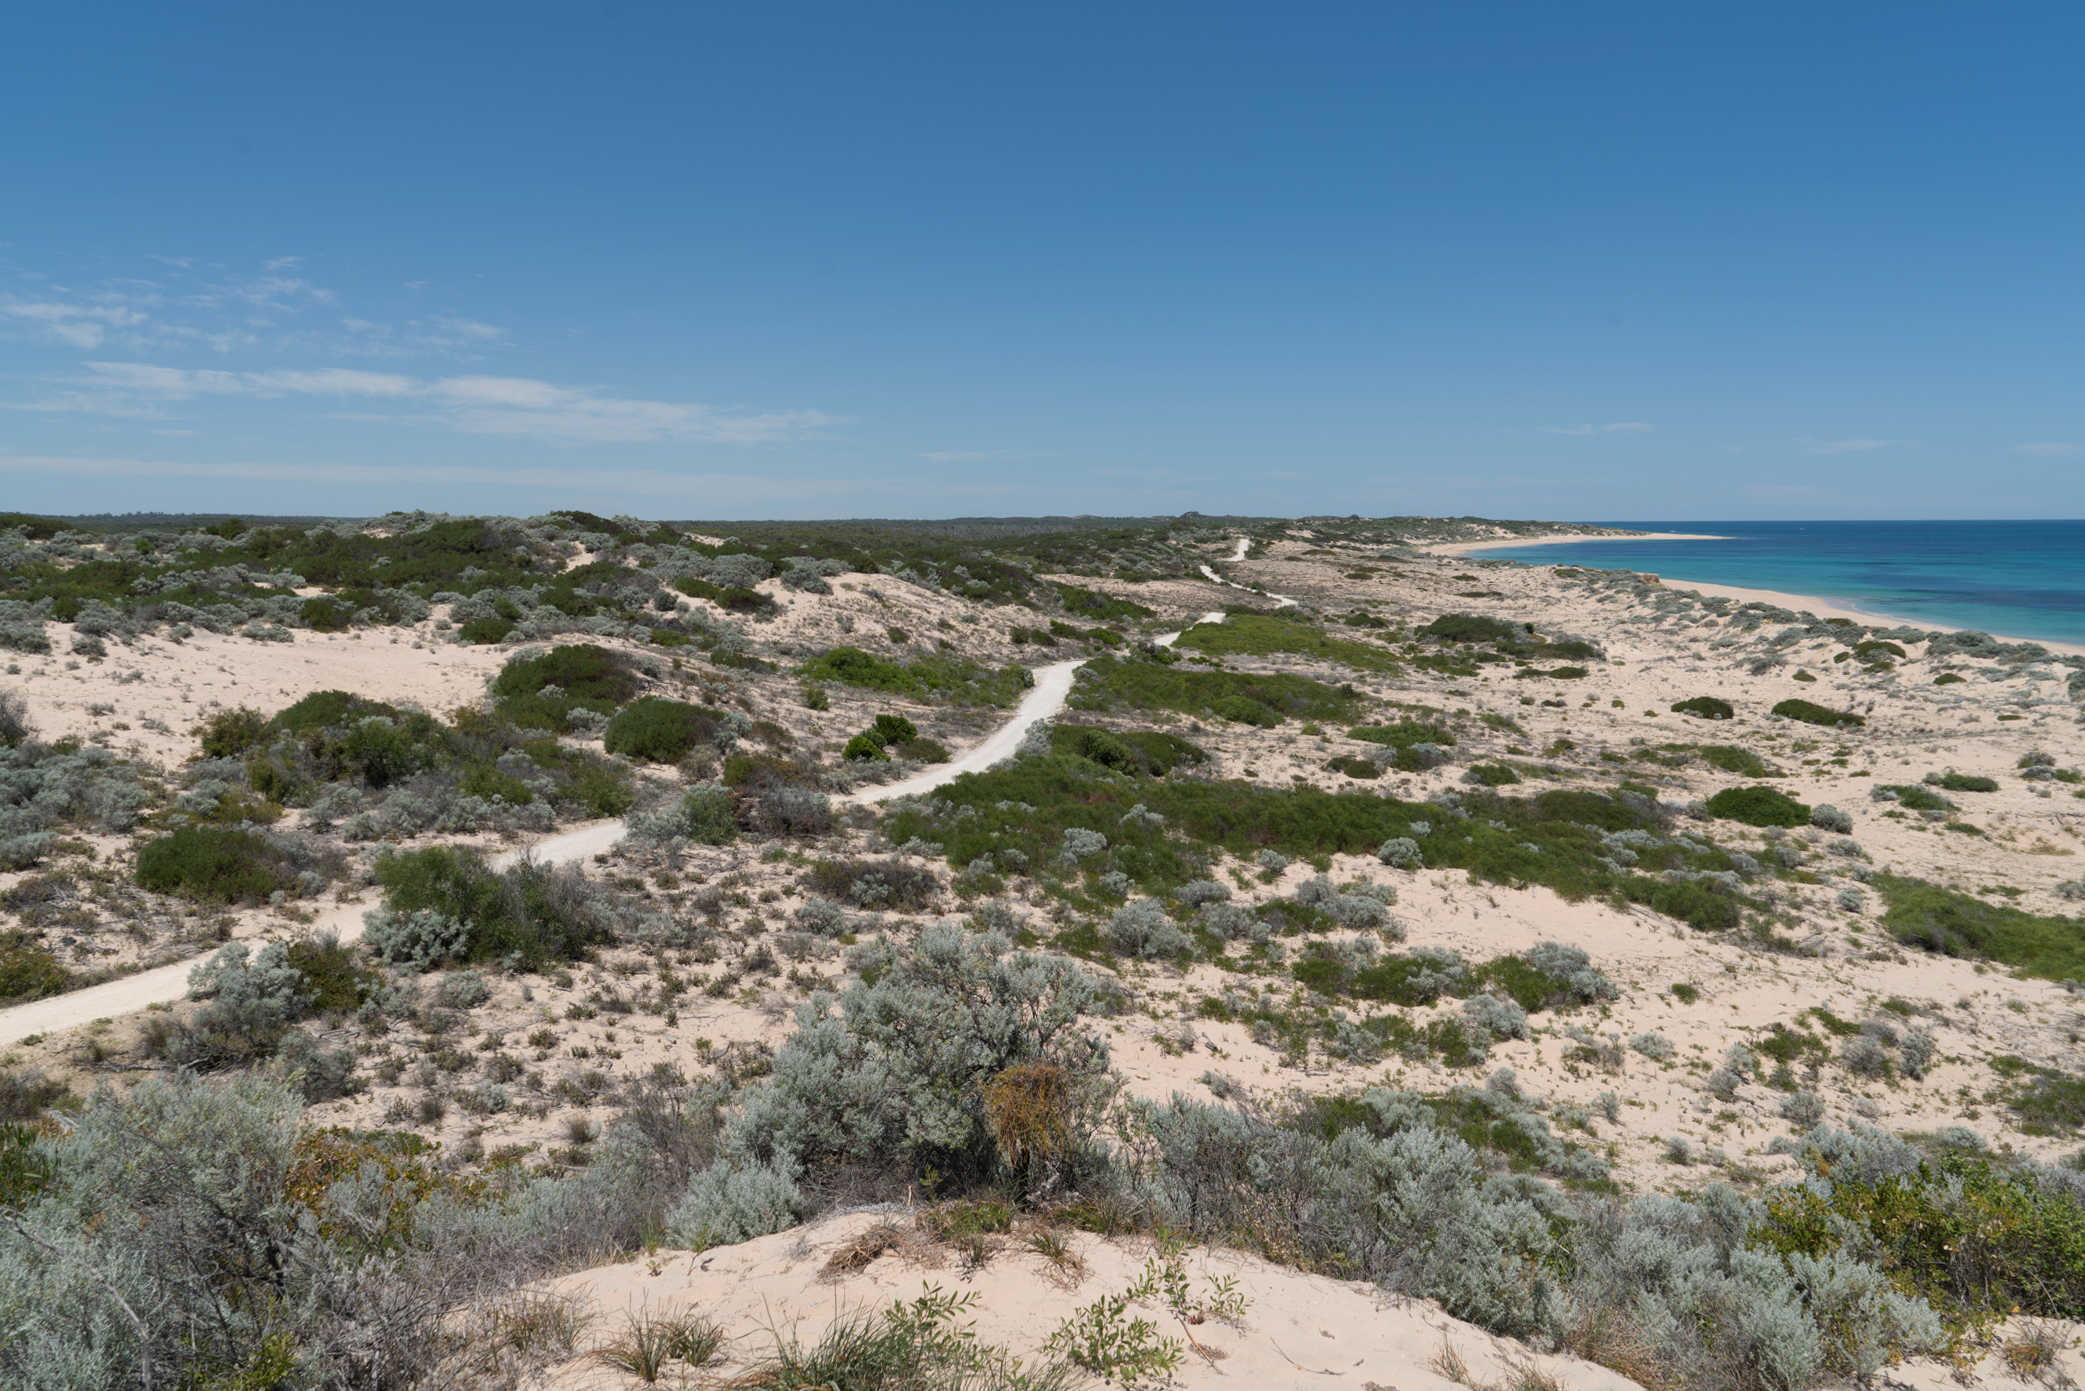 Plate 12: View of limestone track to Tims Thicket Beach form the lookout